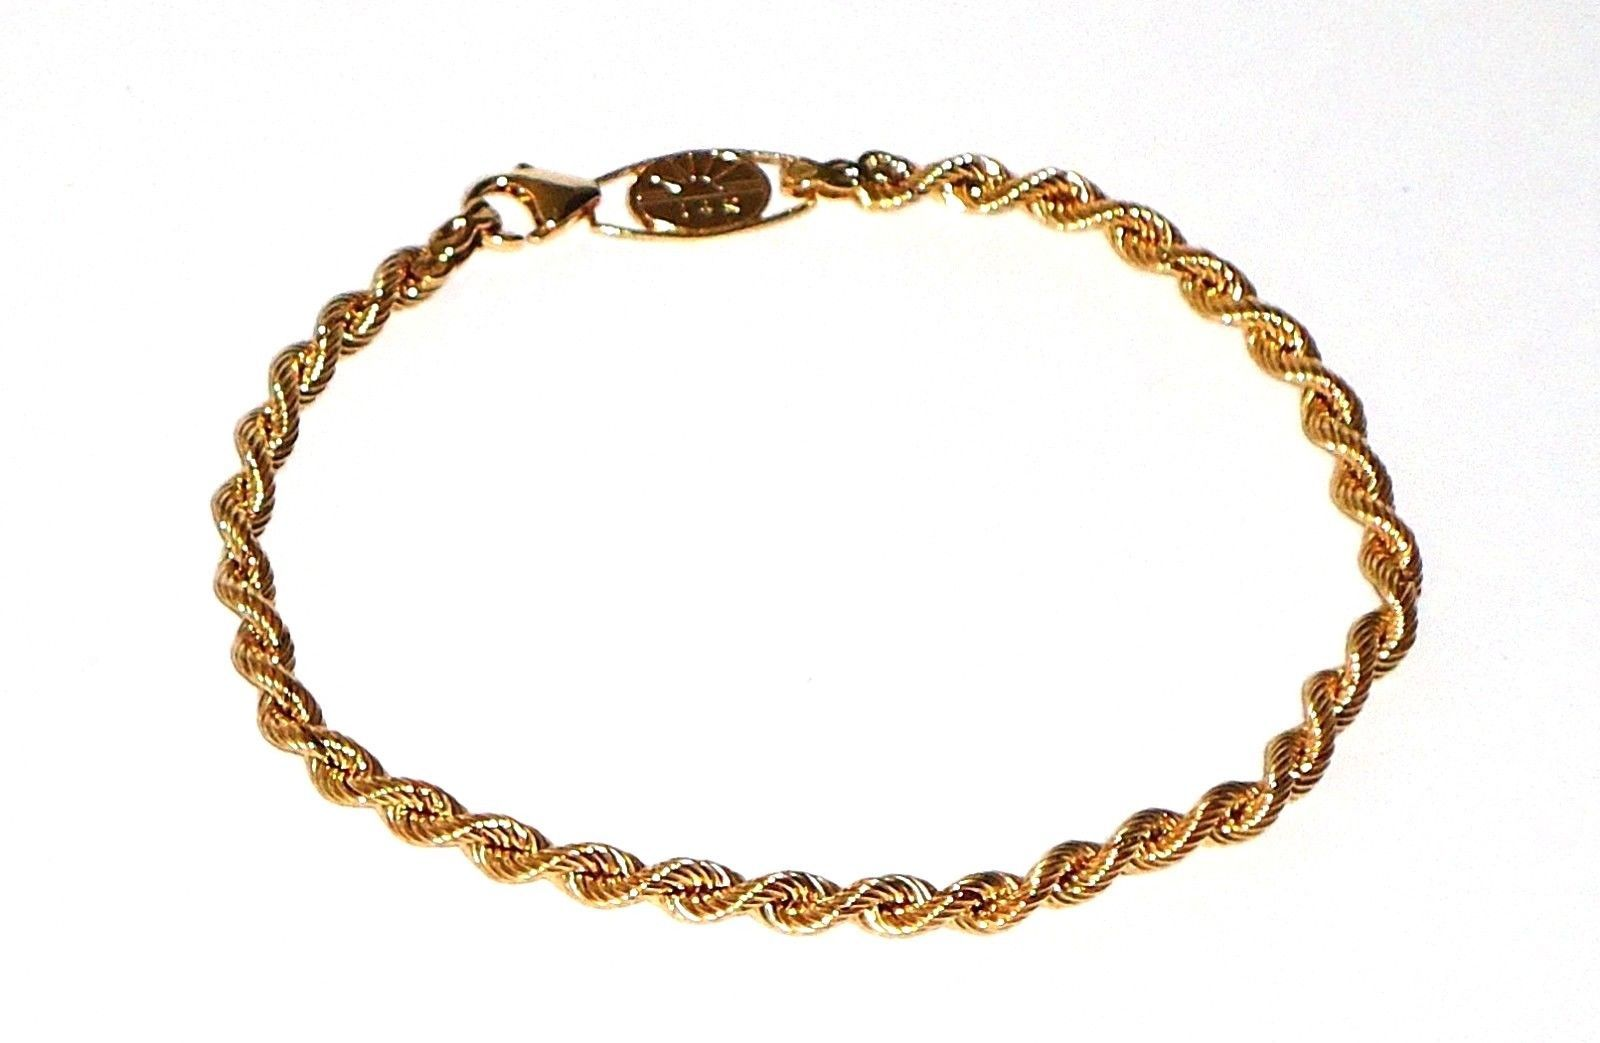 K yellow gold rope bracelet inches new with tags nyt